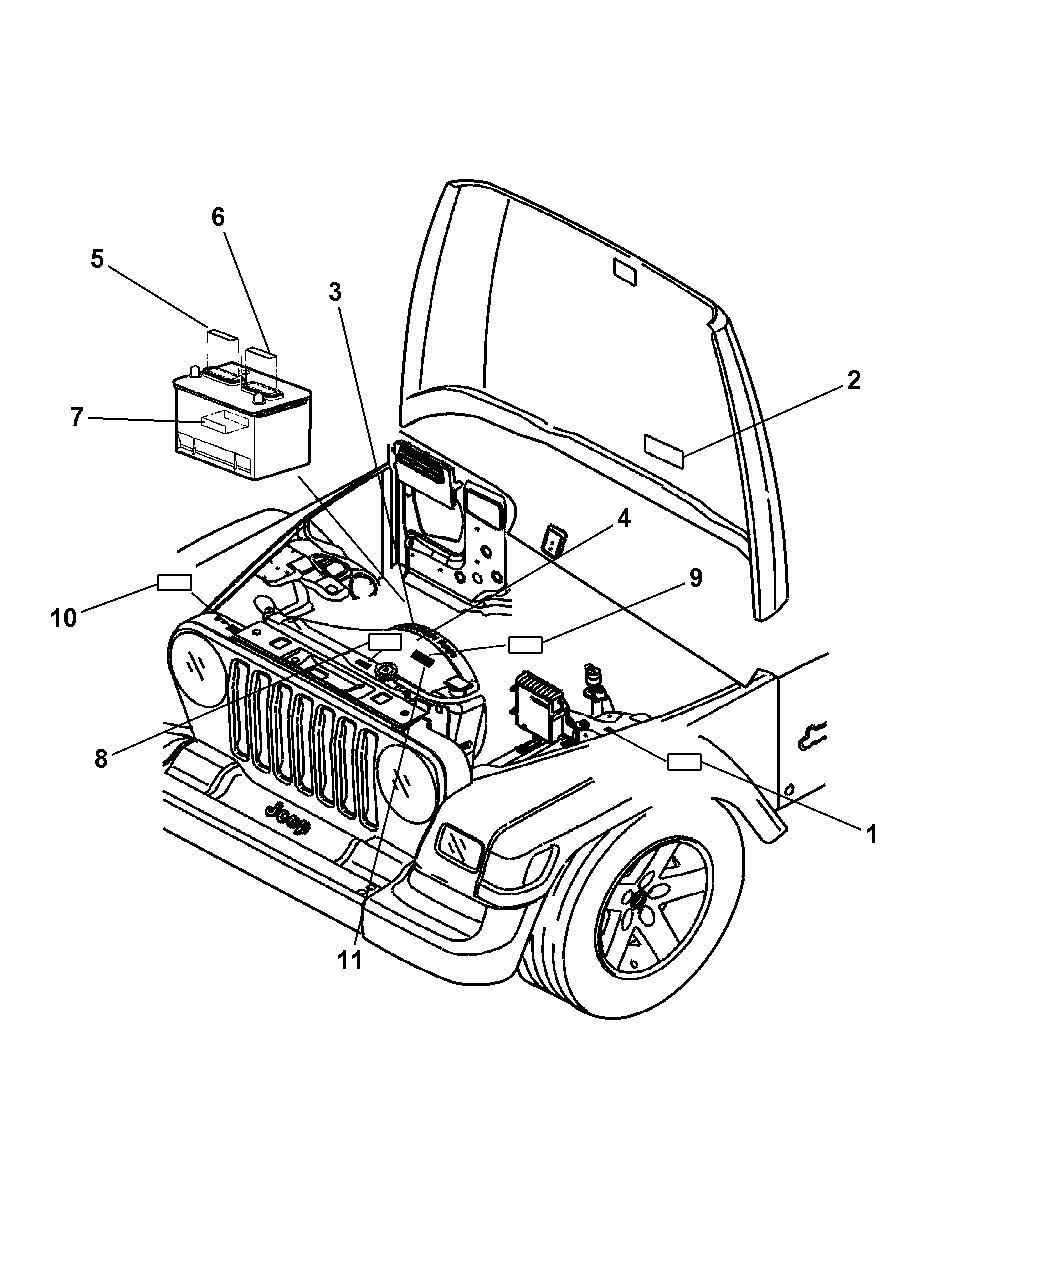 2004 jeep wrangler engine diagram | route-treatme wiring diagram ran -  route-treatme.rolltec-automotive.eu  rolltec-automotive.eu